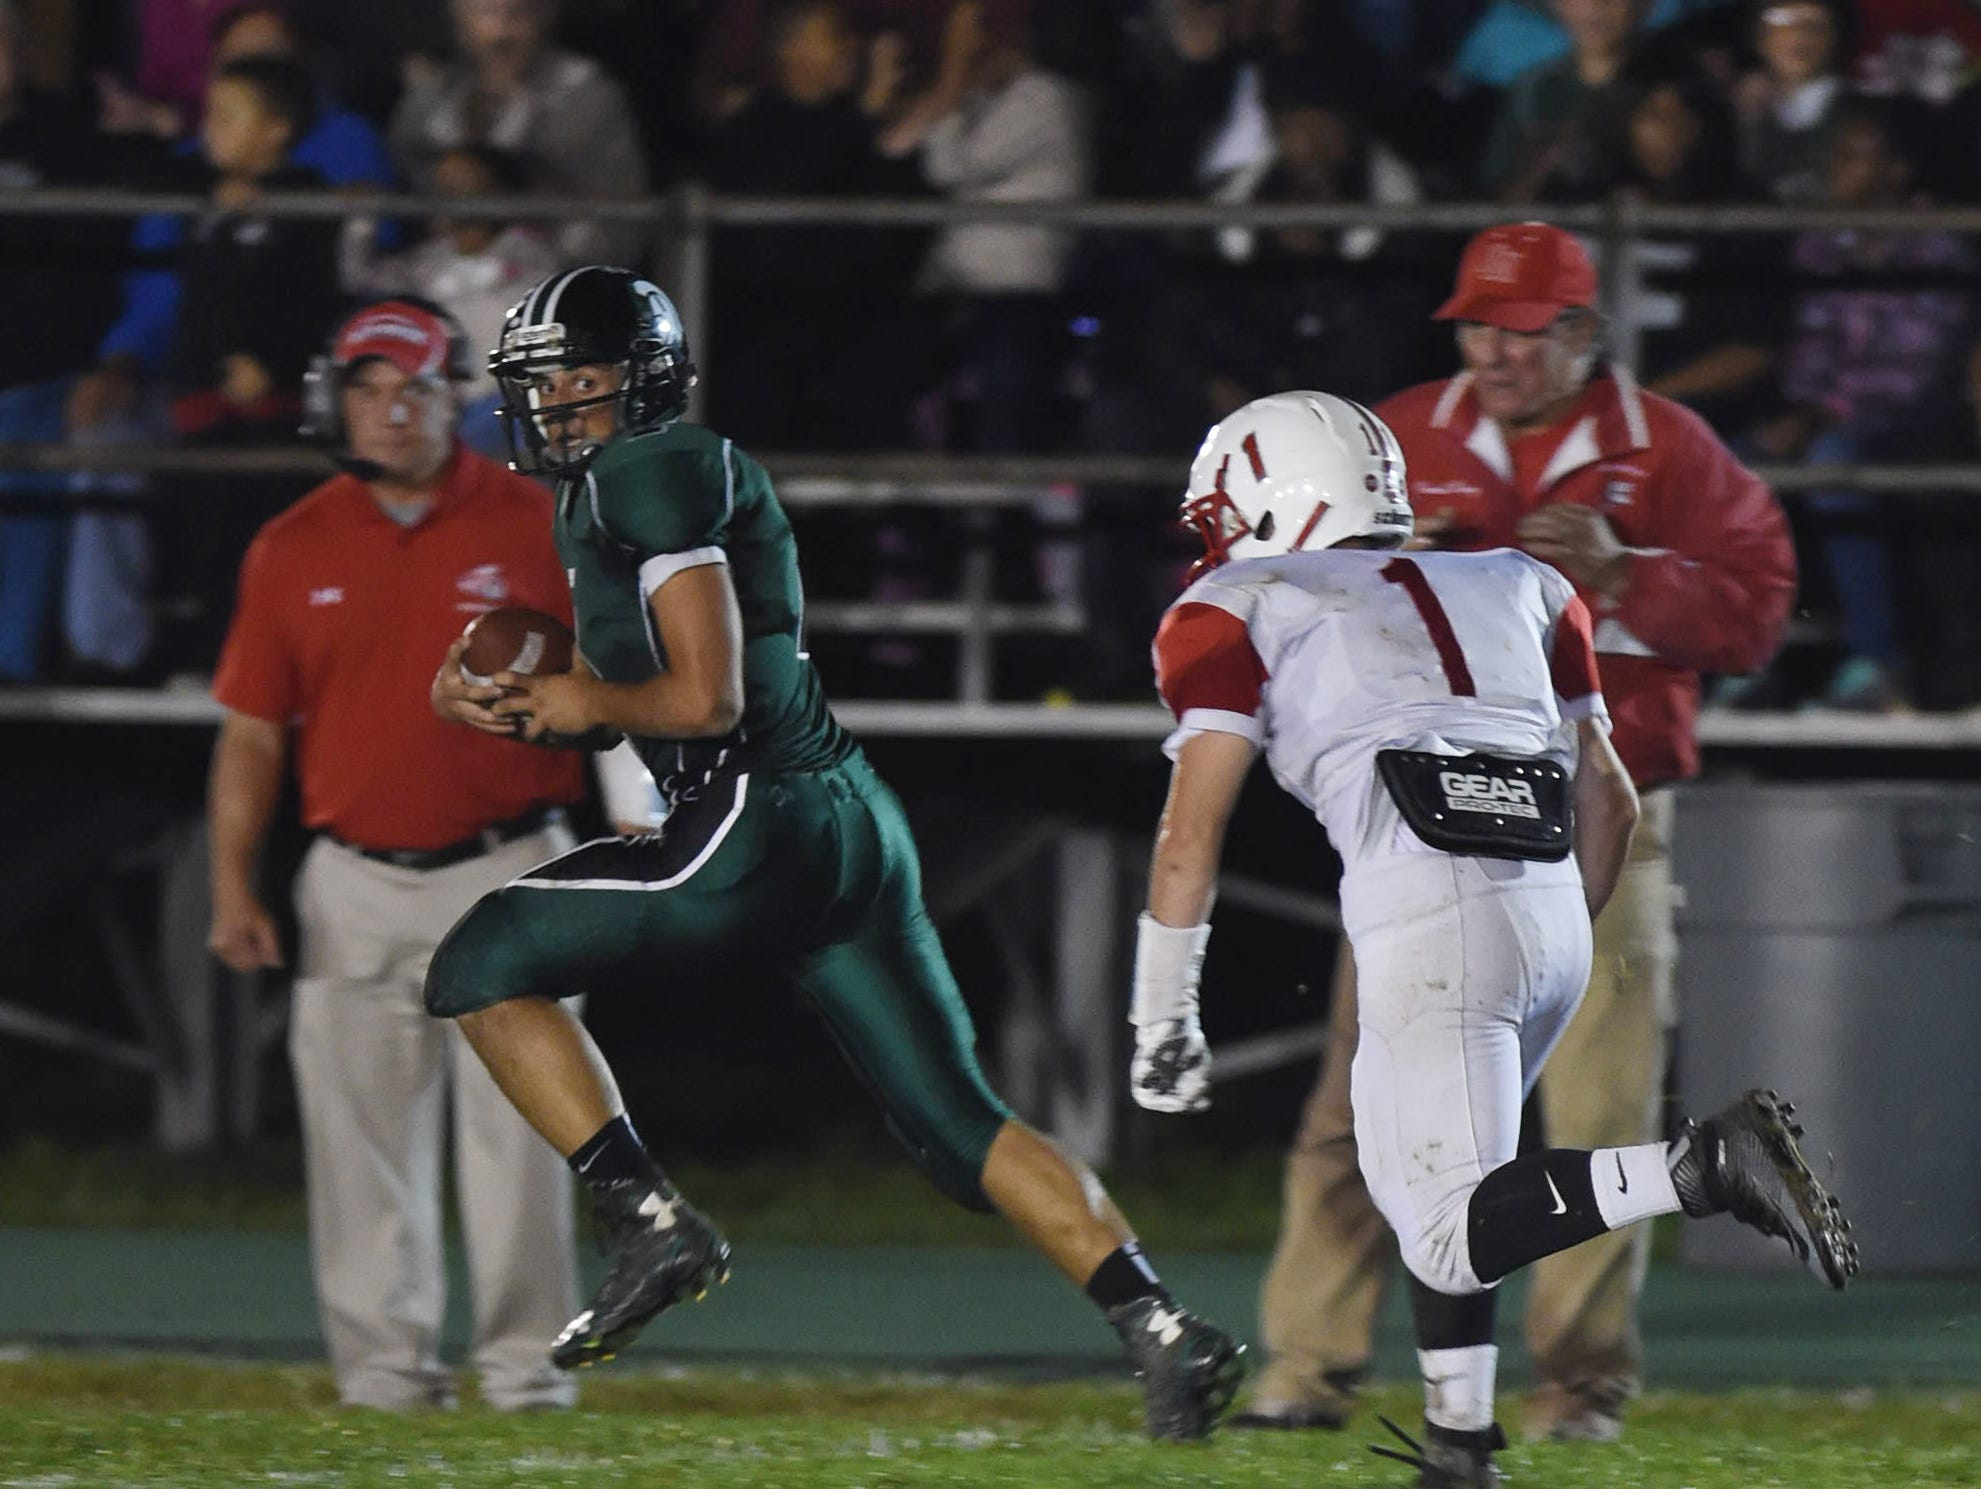 Spackenkill's Joseph Arcuri peeks back at Red Hook's Jimmy Mulvey during his 86 yard touchdown during Friday's game in Poughkeepsie.